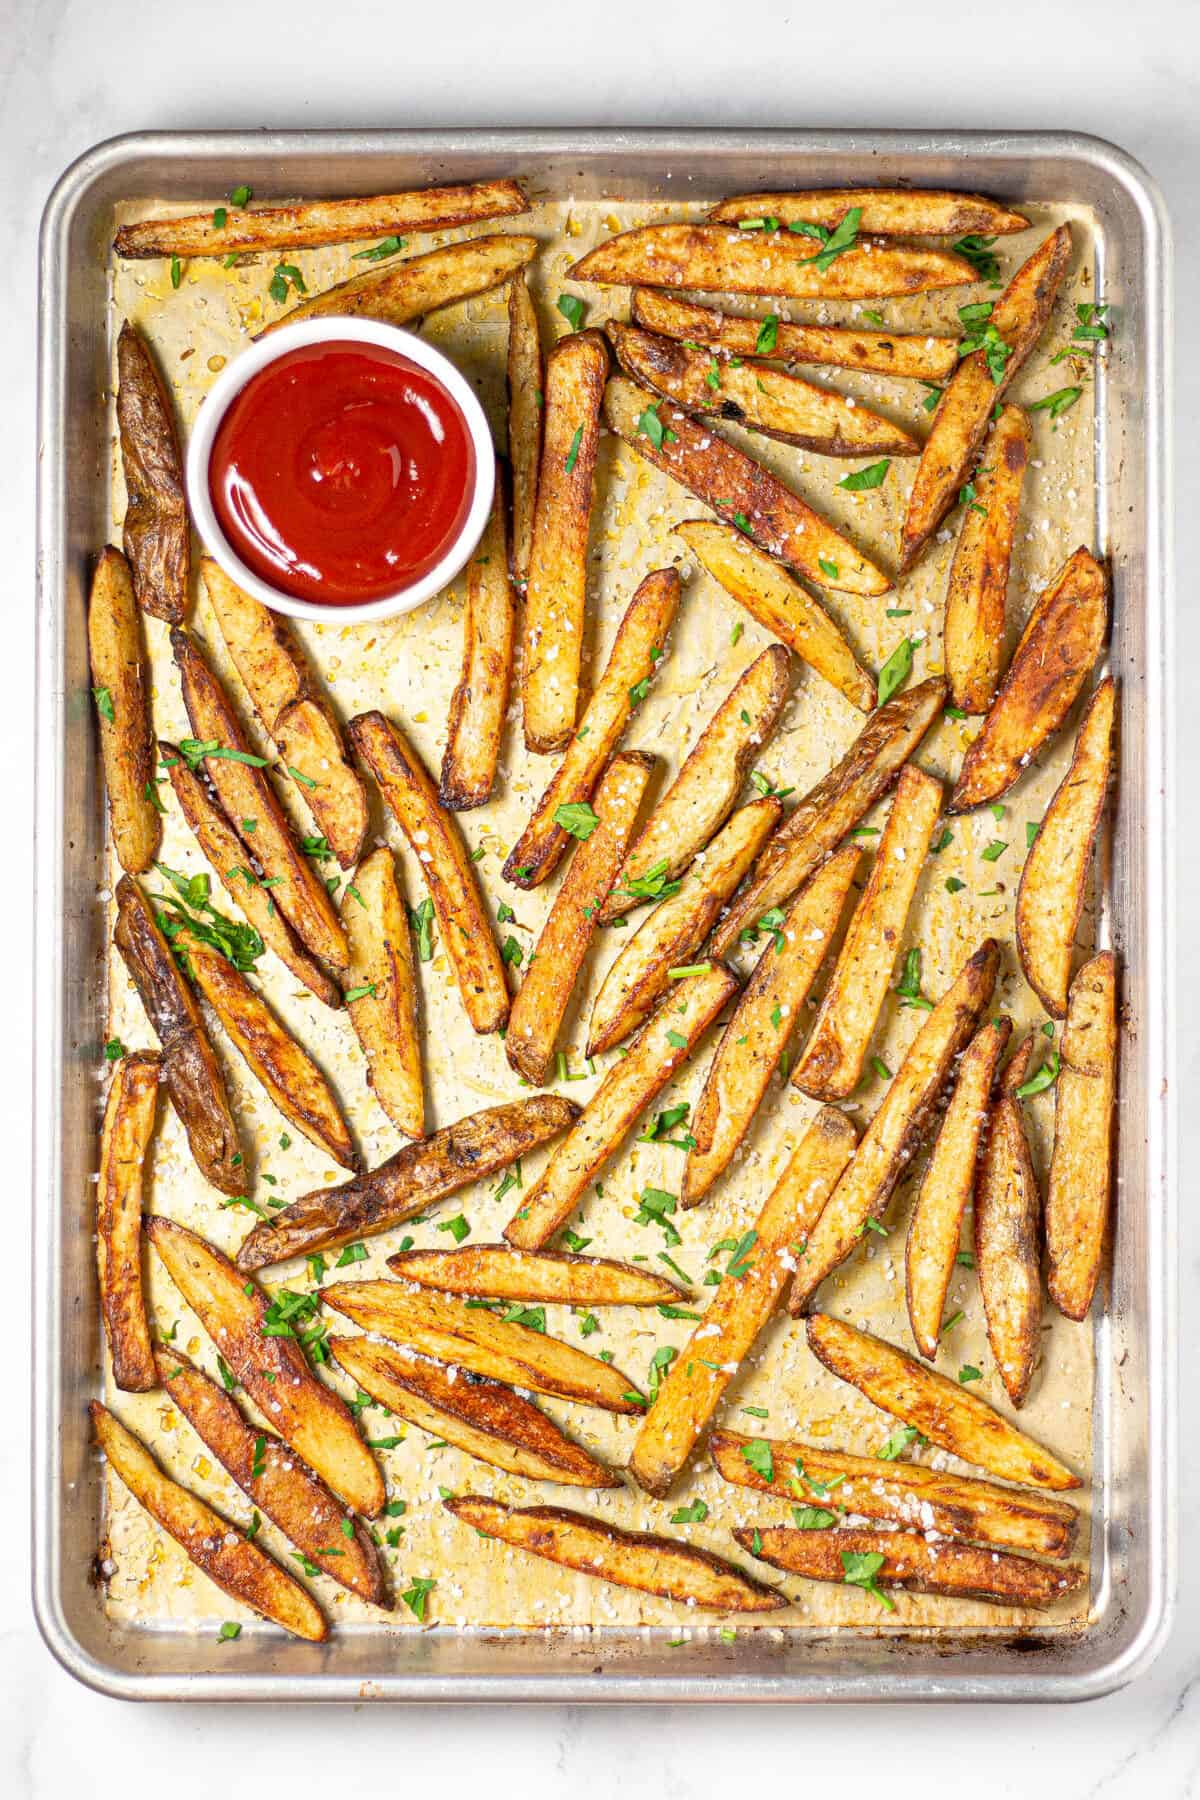 Overhead shot of a baking sheet filled with baked fries and ketchup